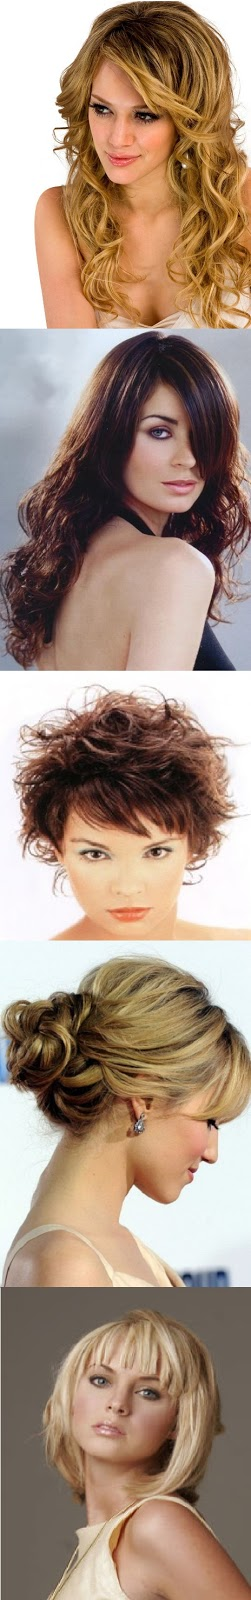 Cute Ladies Hairstyle Designs for 2013